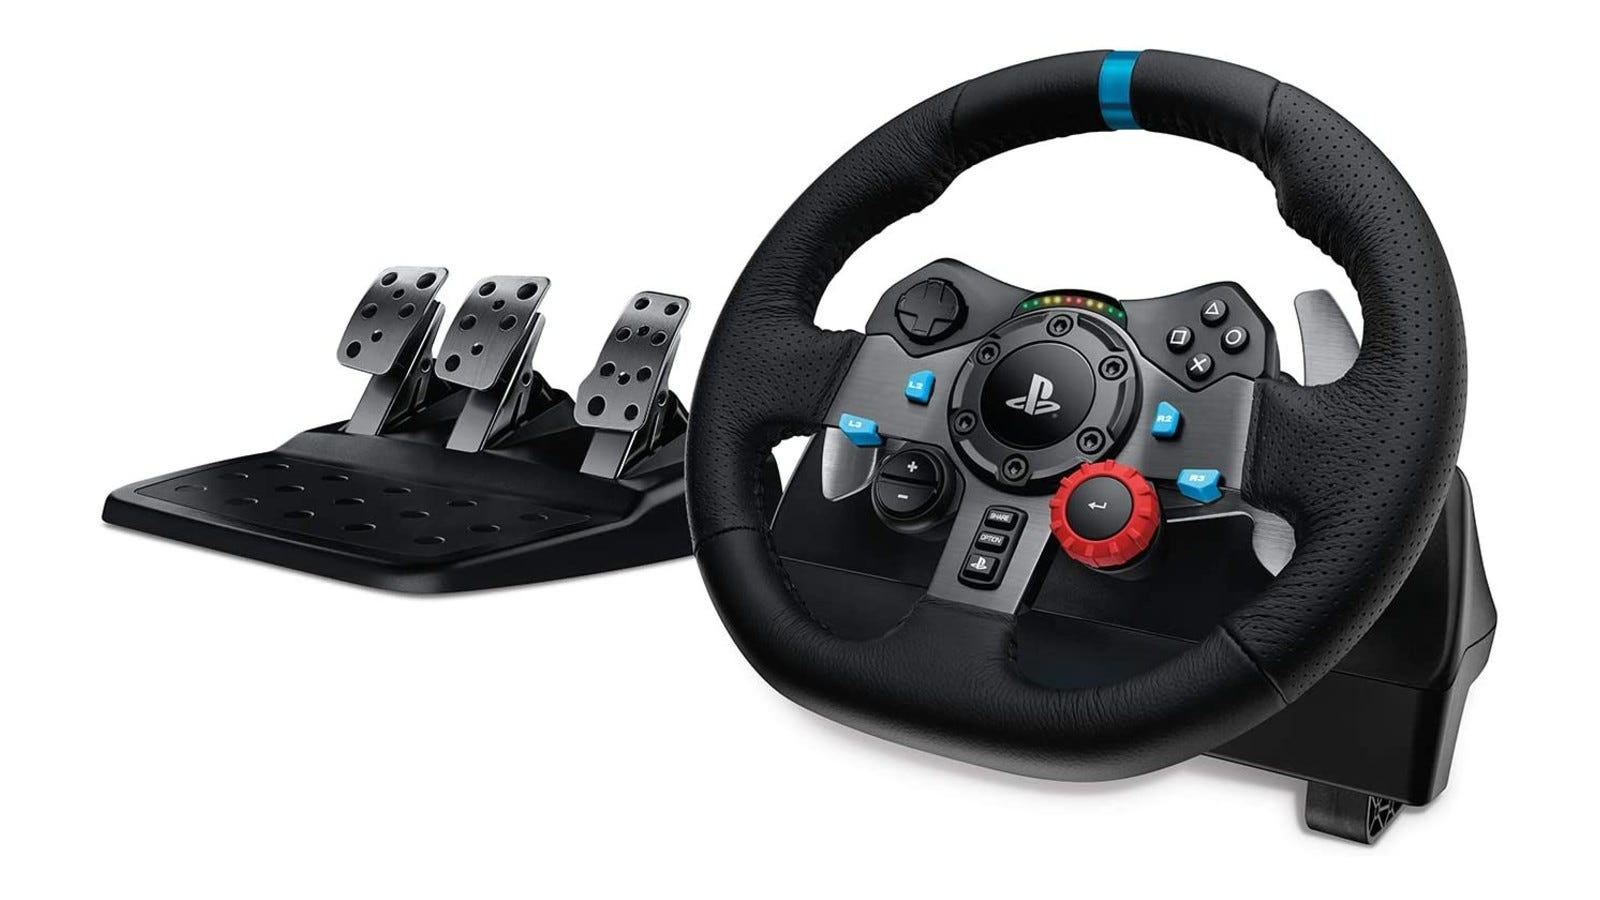 A versatile racing wheel with intuitive controls